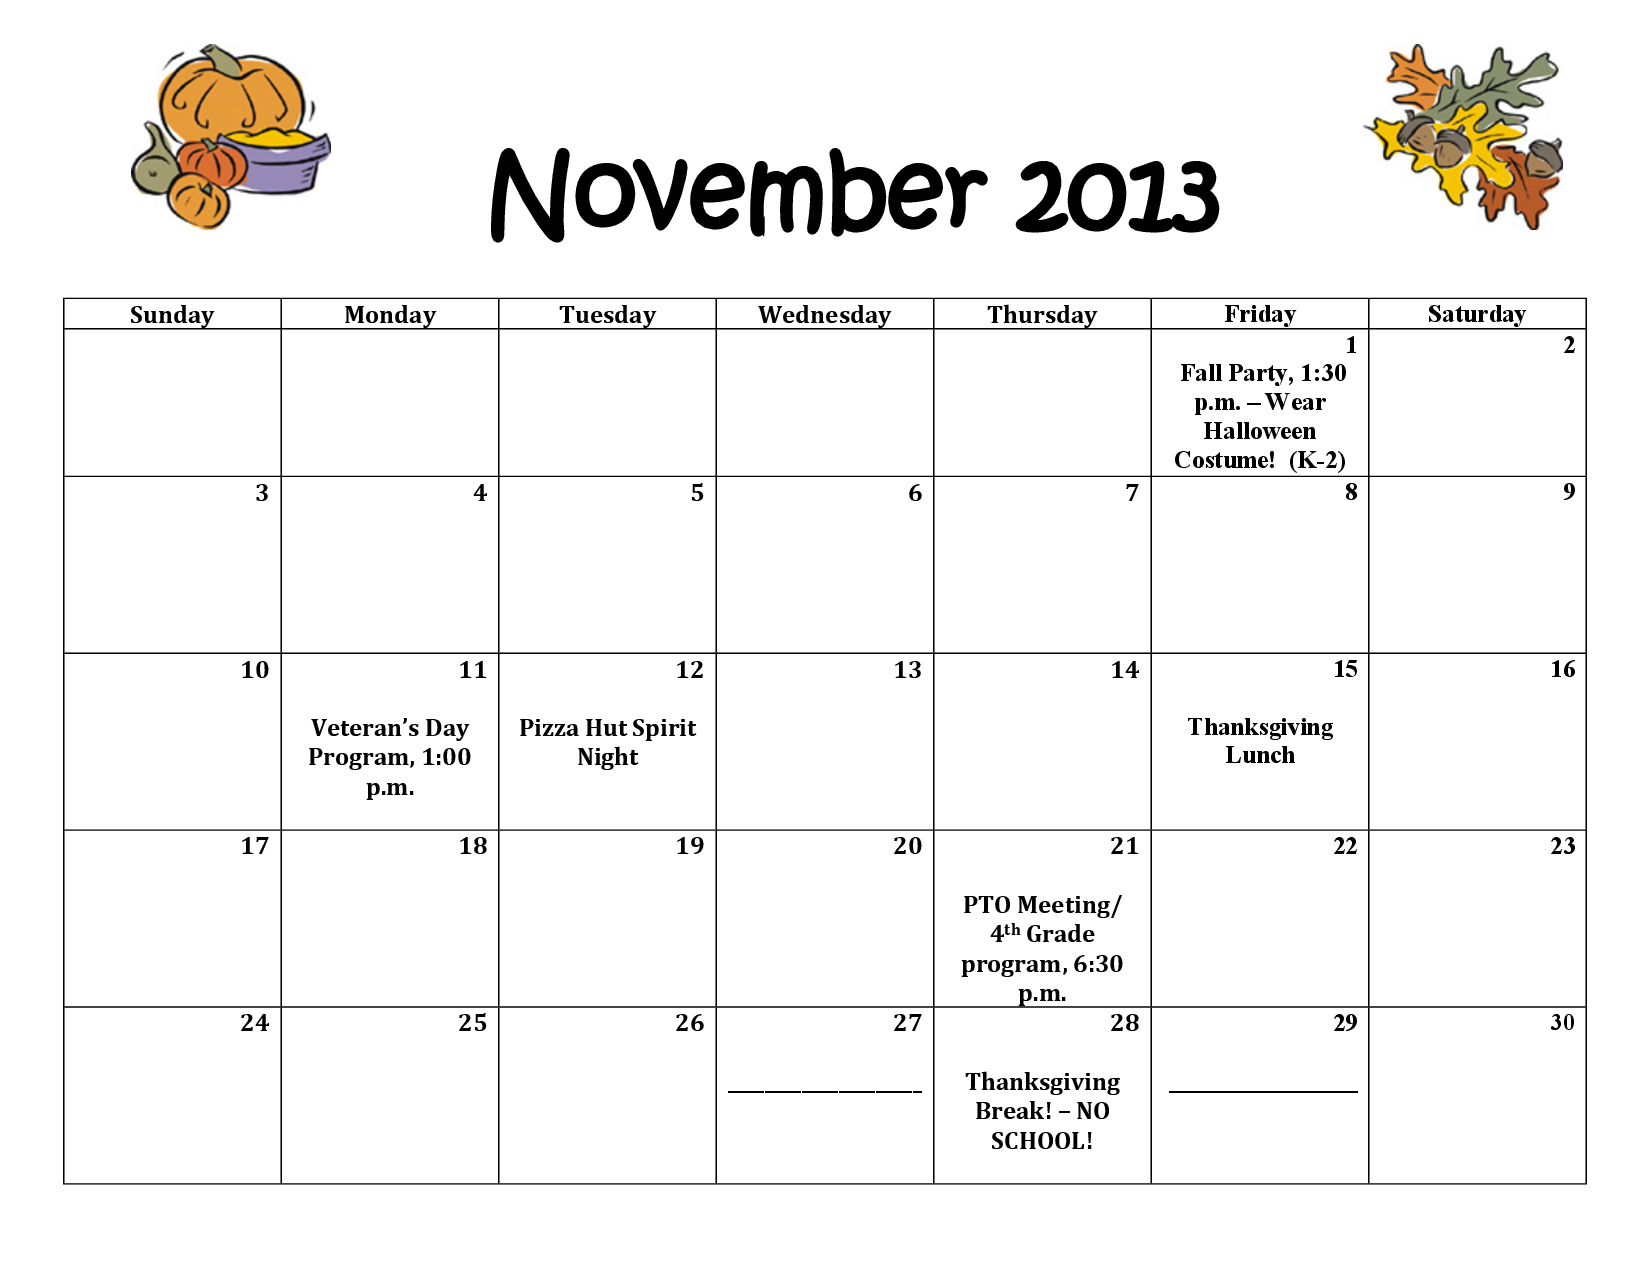 6 Images of Printable November 2013 Thanksgiving Calendar